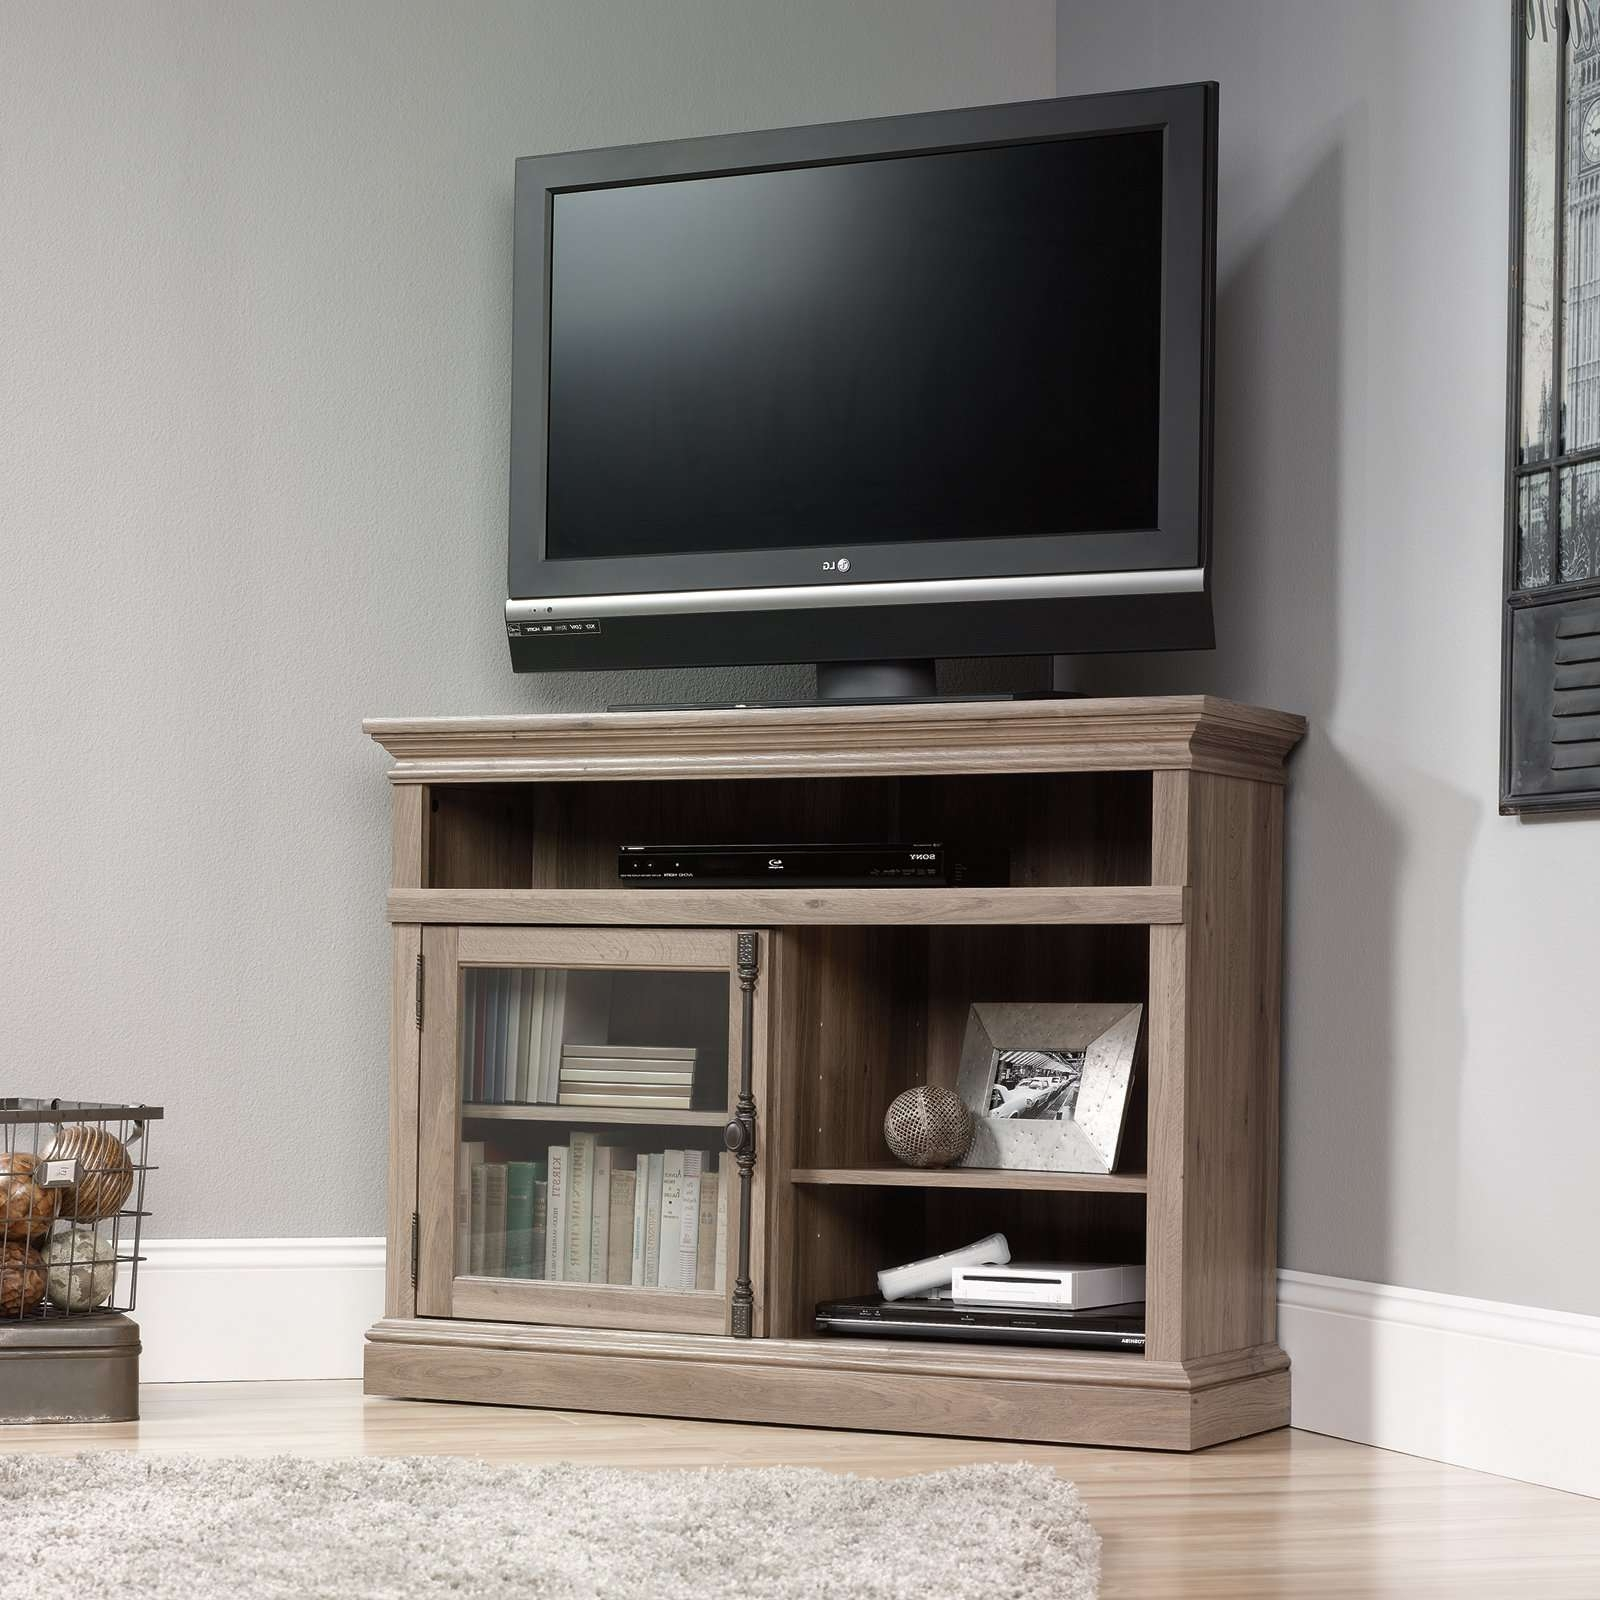 Tv : Cheap Oak Tv Stands Charming' Glorious Cheap Wooden Tv Stands Pertaining To Cheap Oak Tv Stands (View 5 of 15)